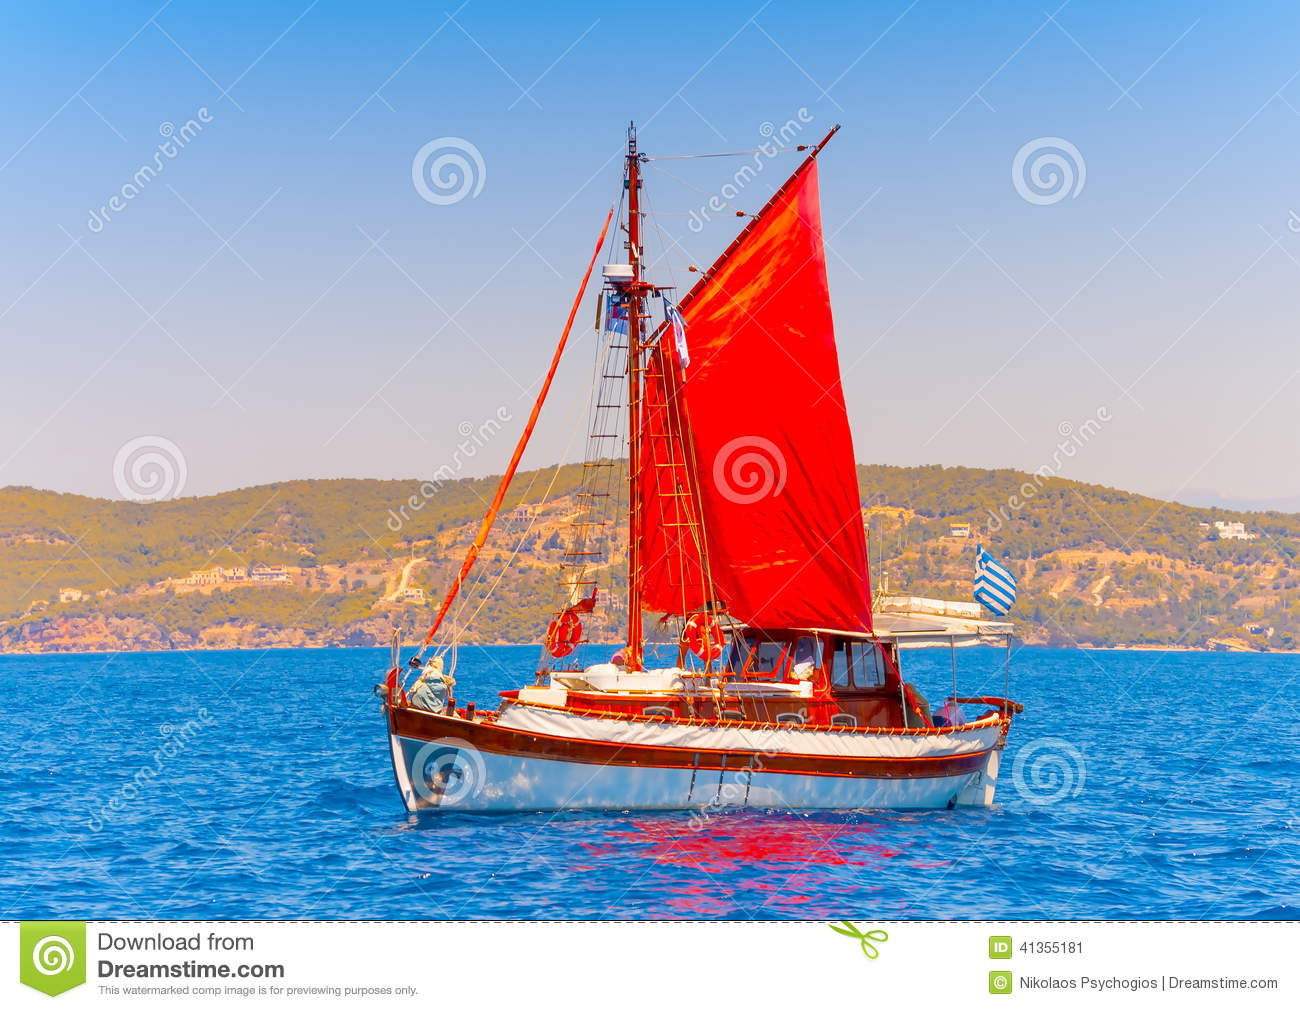 Classic Wooden Sailing Boat Stock Image - Image: 41355181